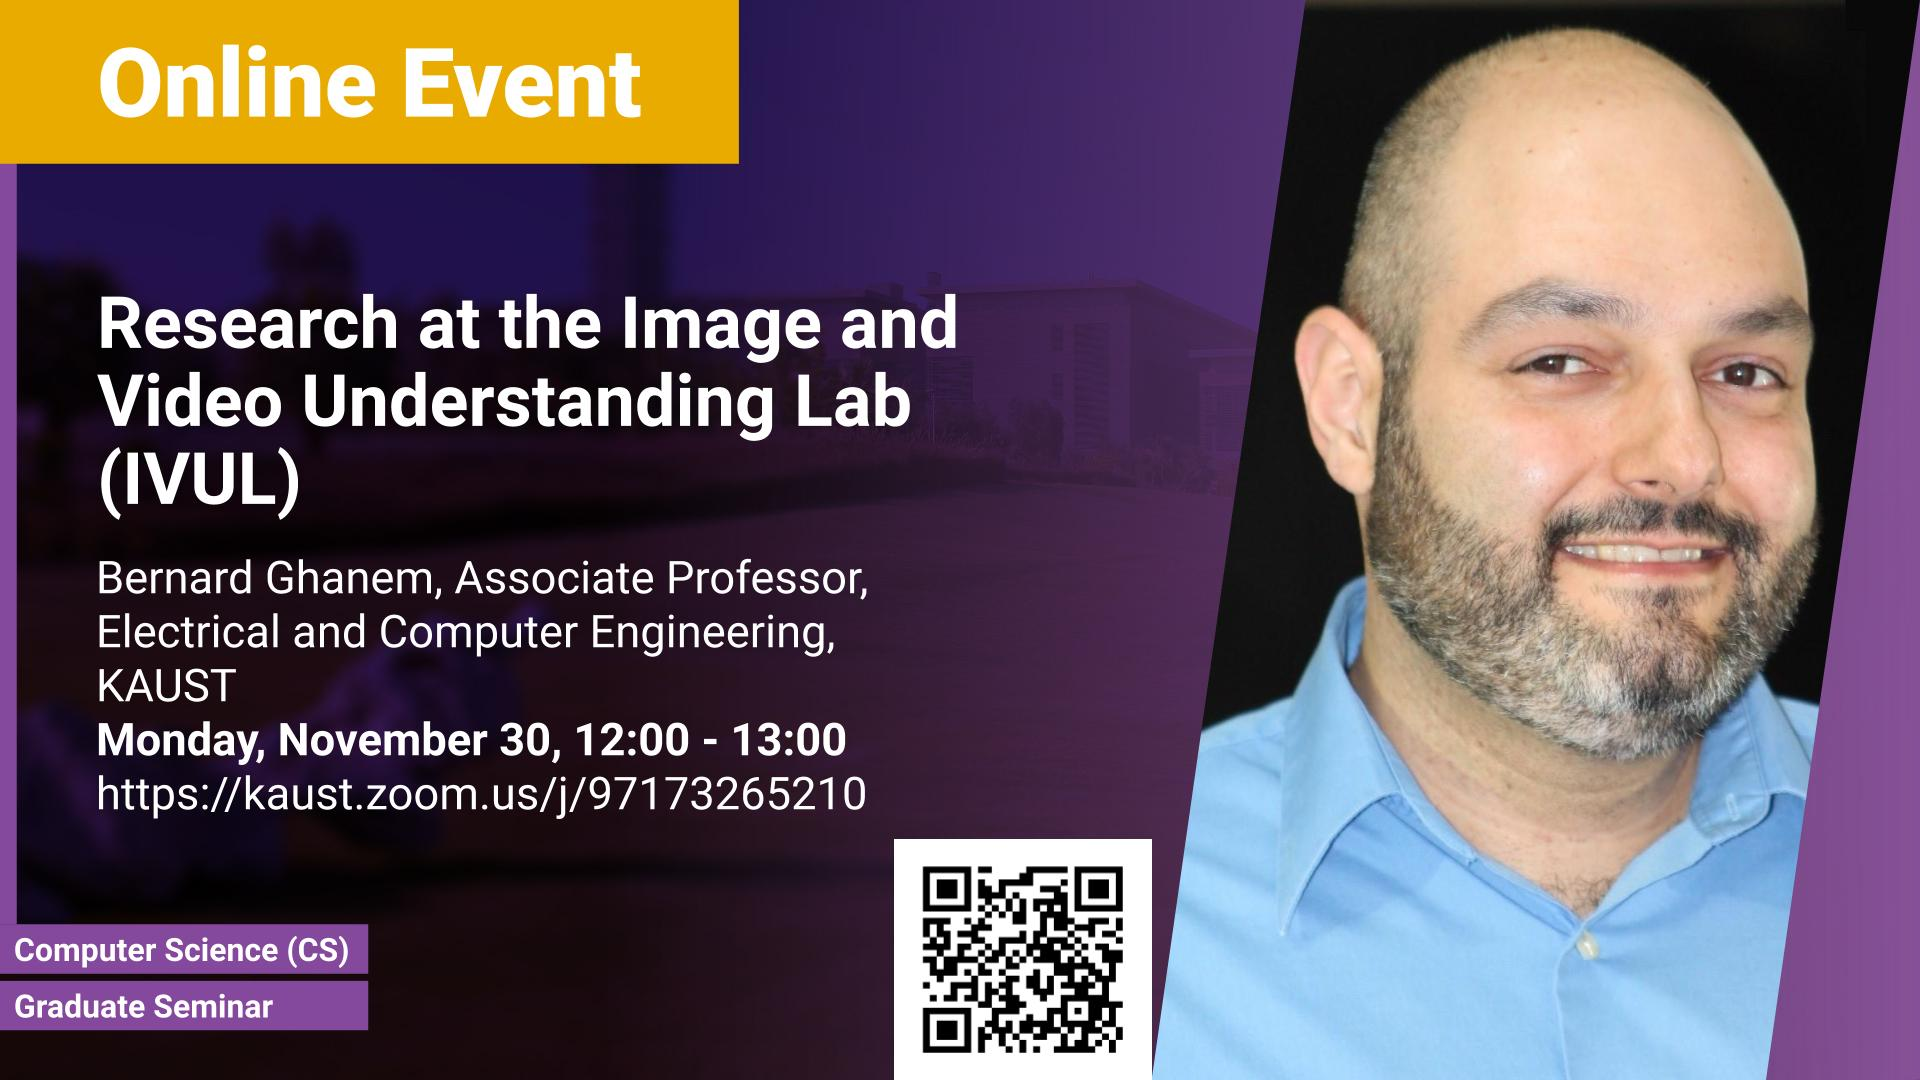 KAUST CEMSE CS Graduate Seminar Bernard Ghanem Research at the Image and Video Understanding Lab (IVUL)